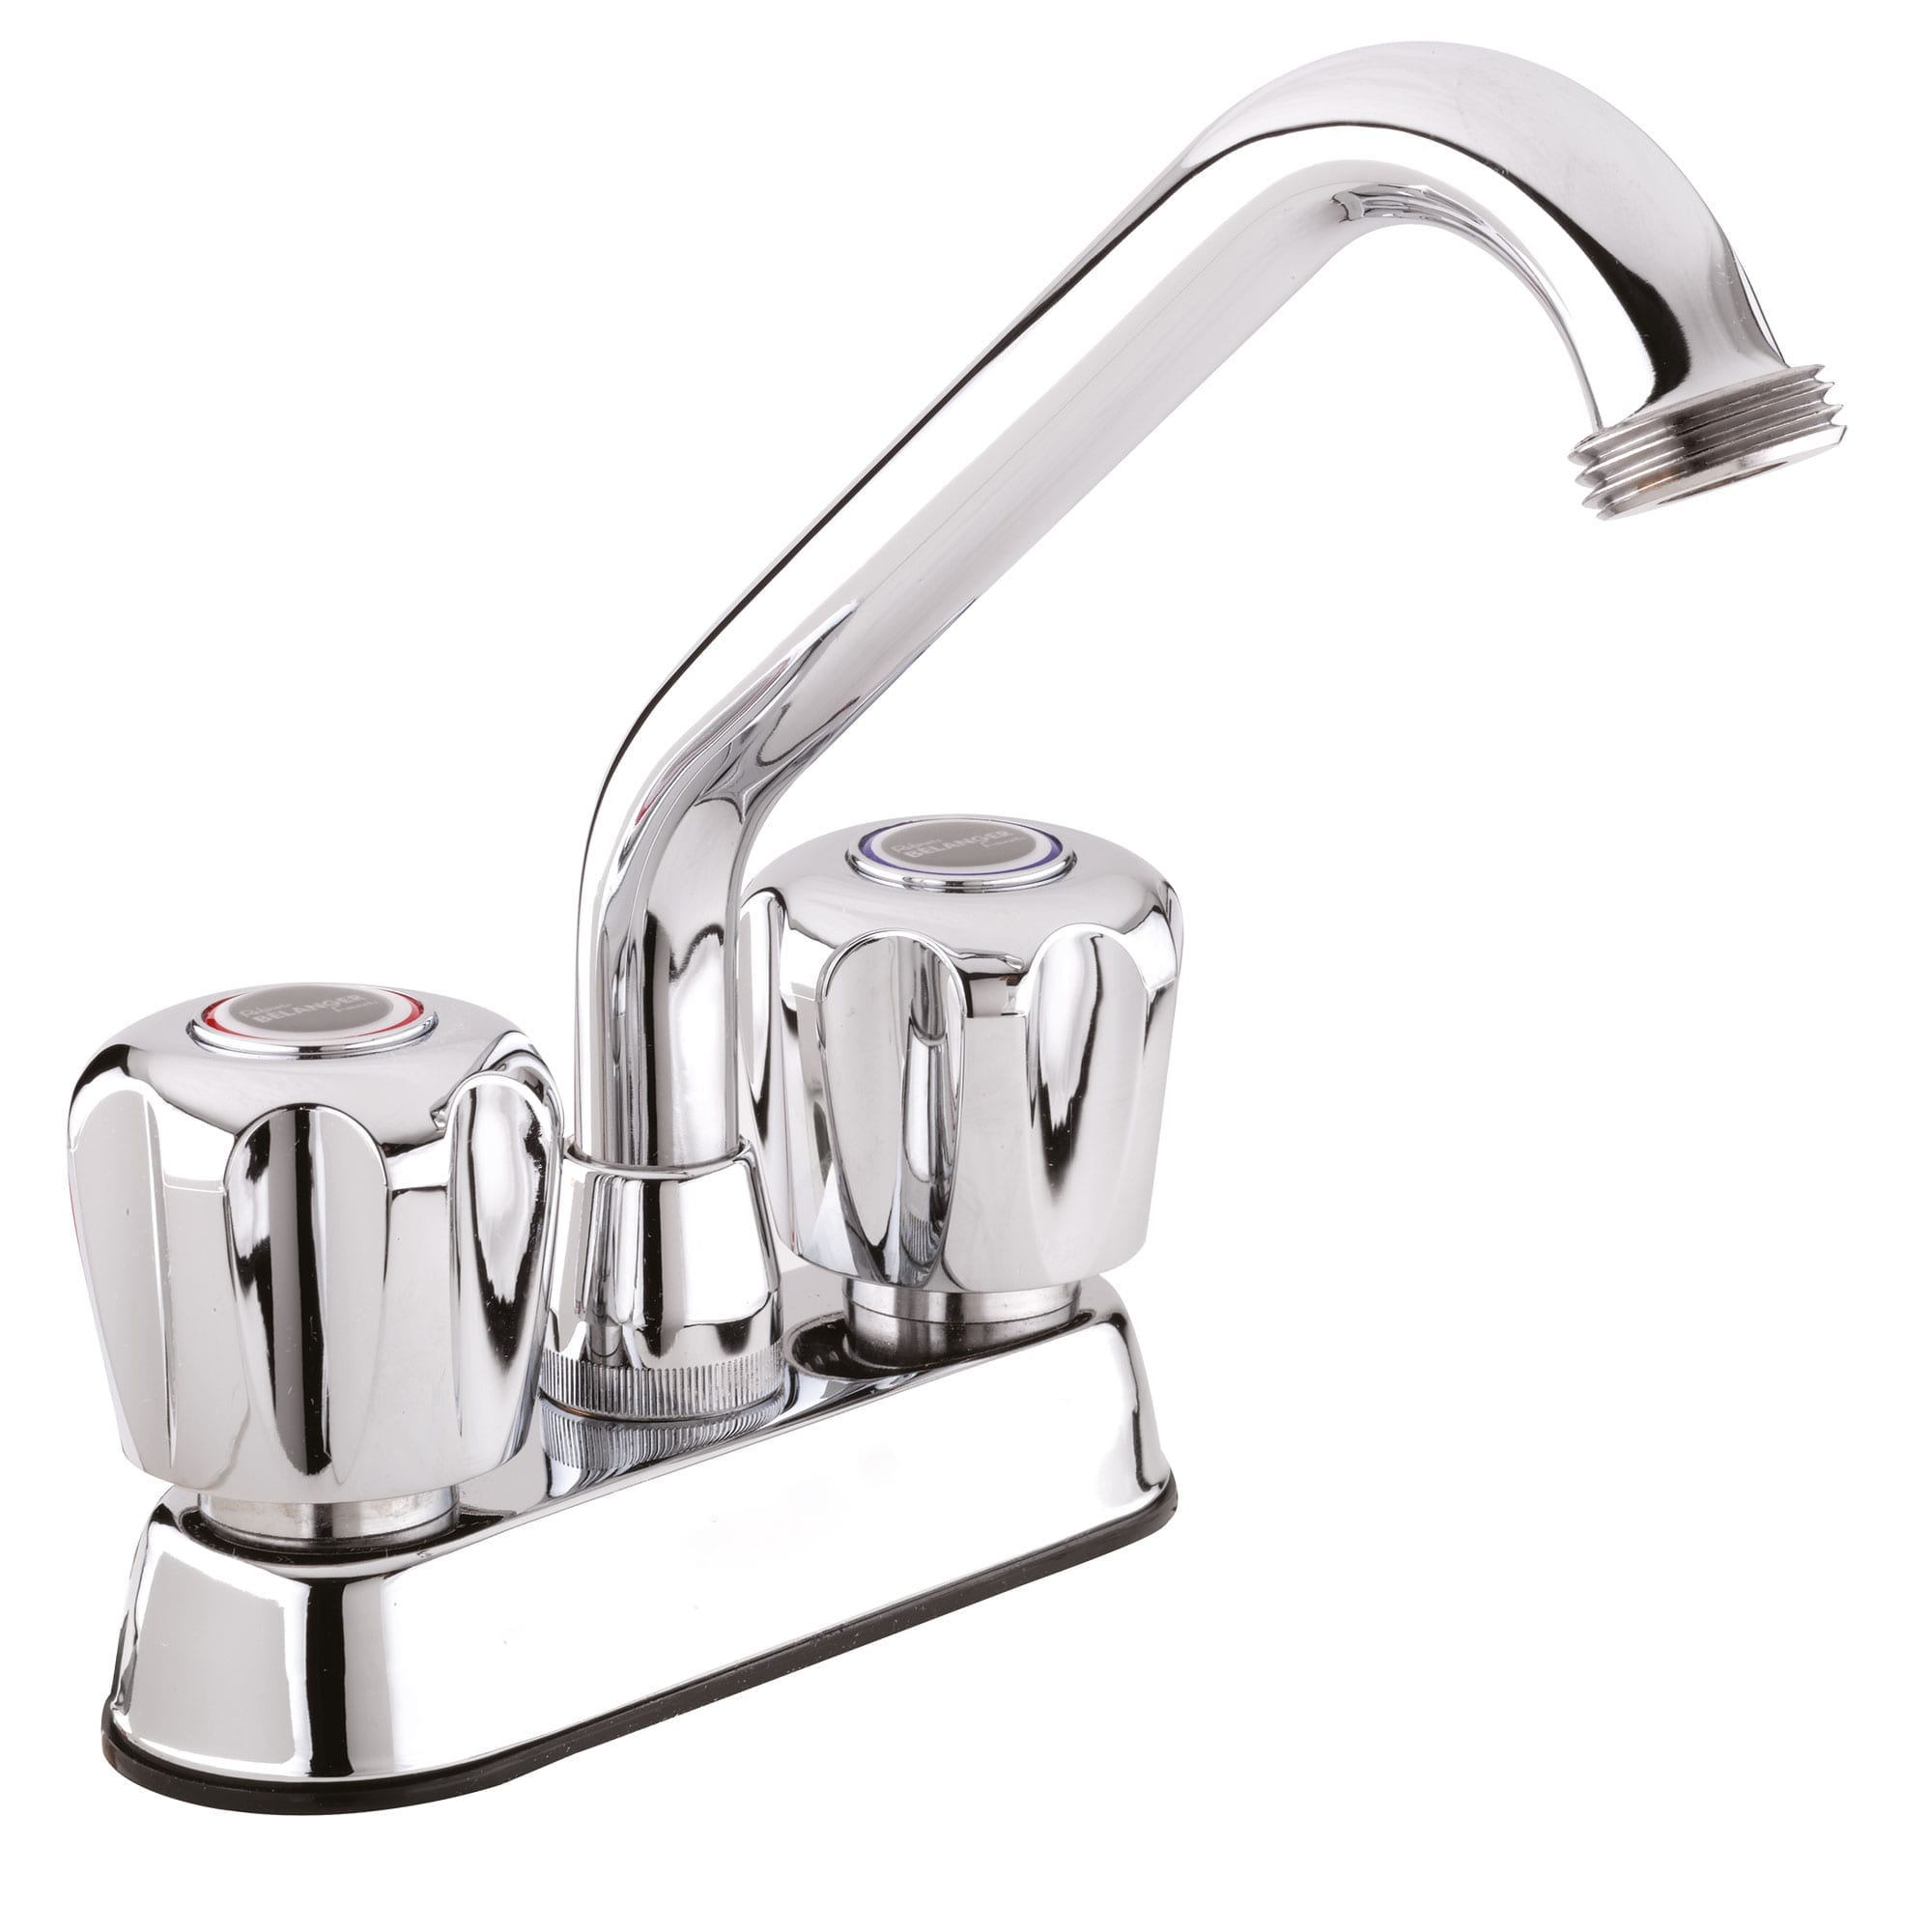 faucet warehouse on basin from russian home bathroom faucets steel improvement sink n tub vessel in nanwo item laundry stainless blavatory